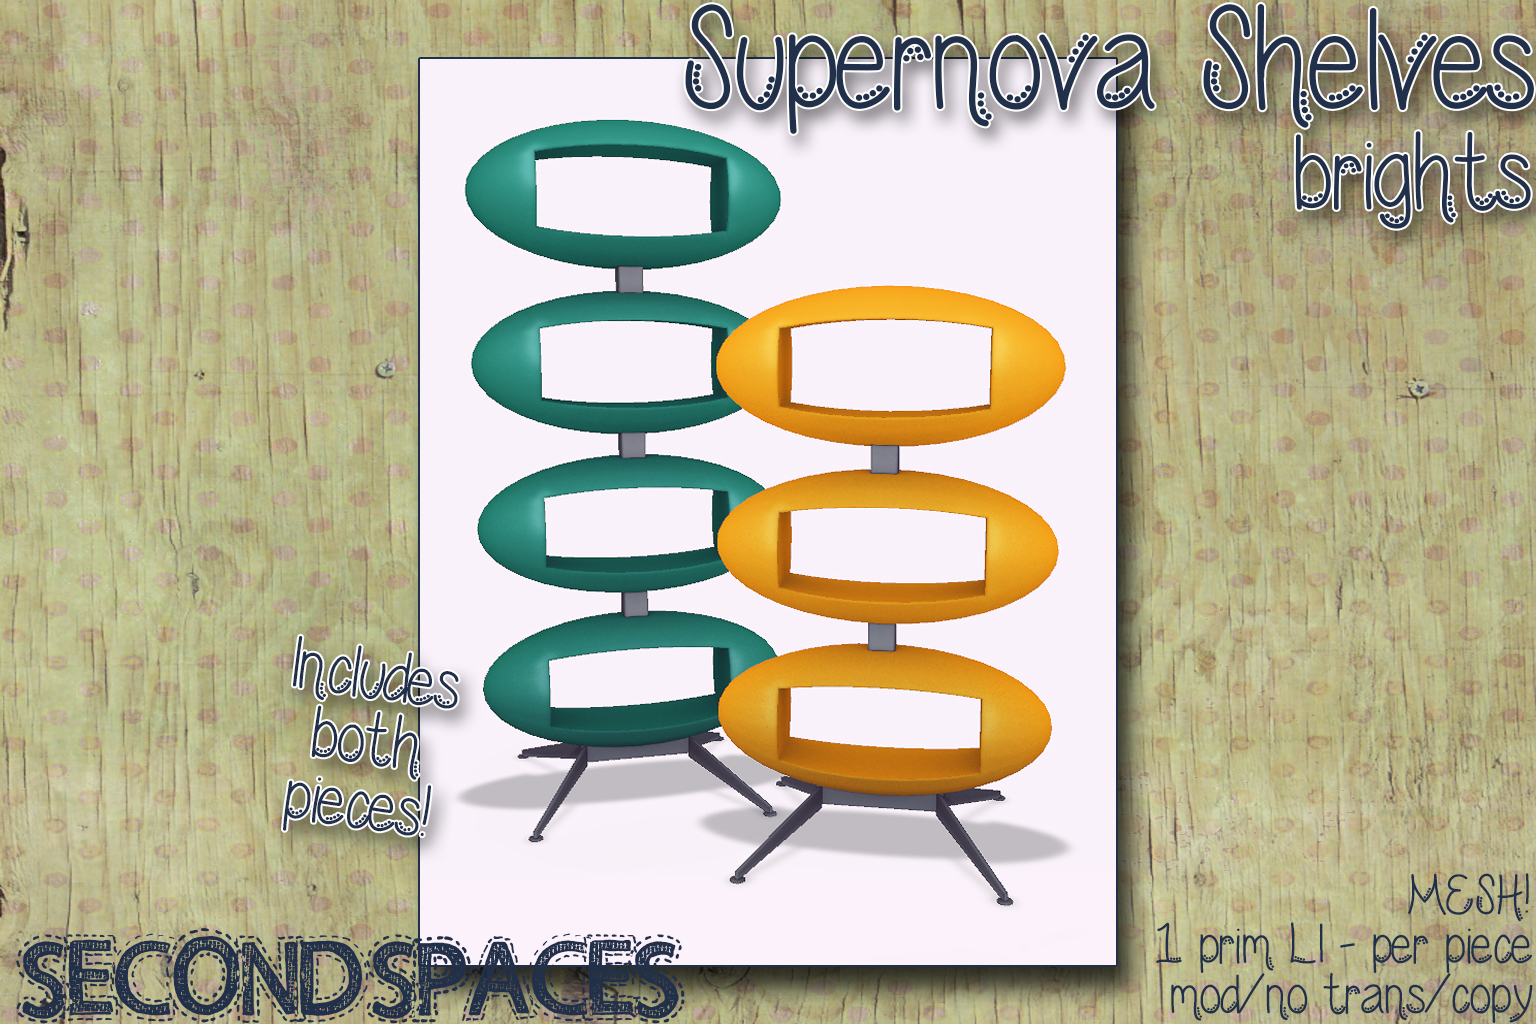 supernova shelves_brights_vendor.jpg